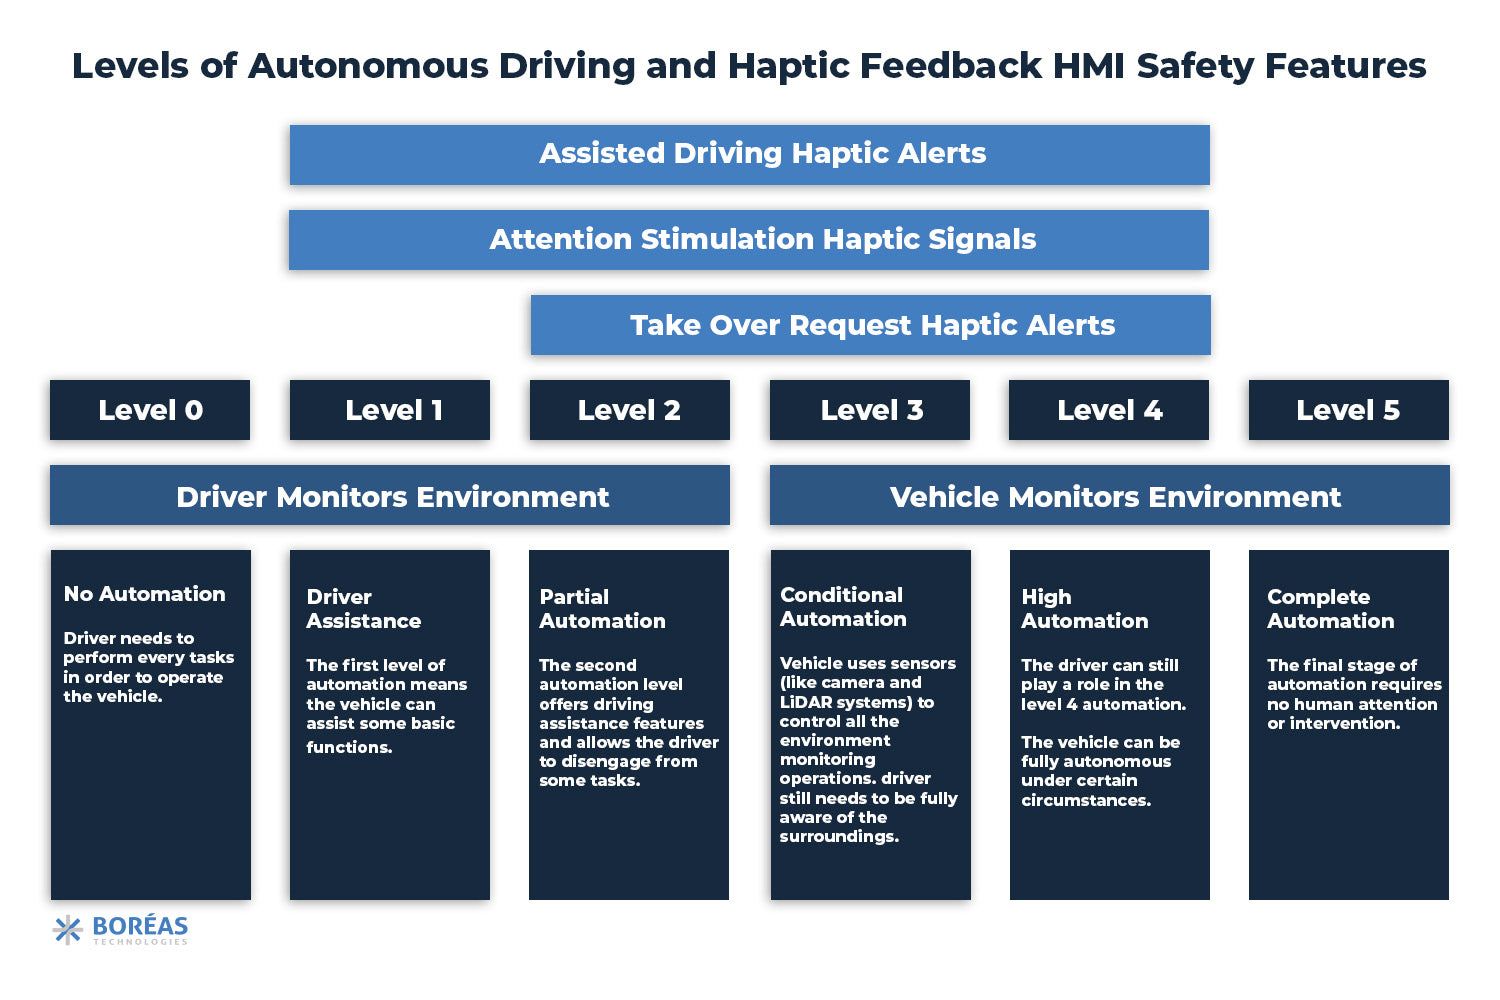 Different Levels of Vehicle Automation and Haptic Safety Features